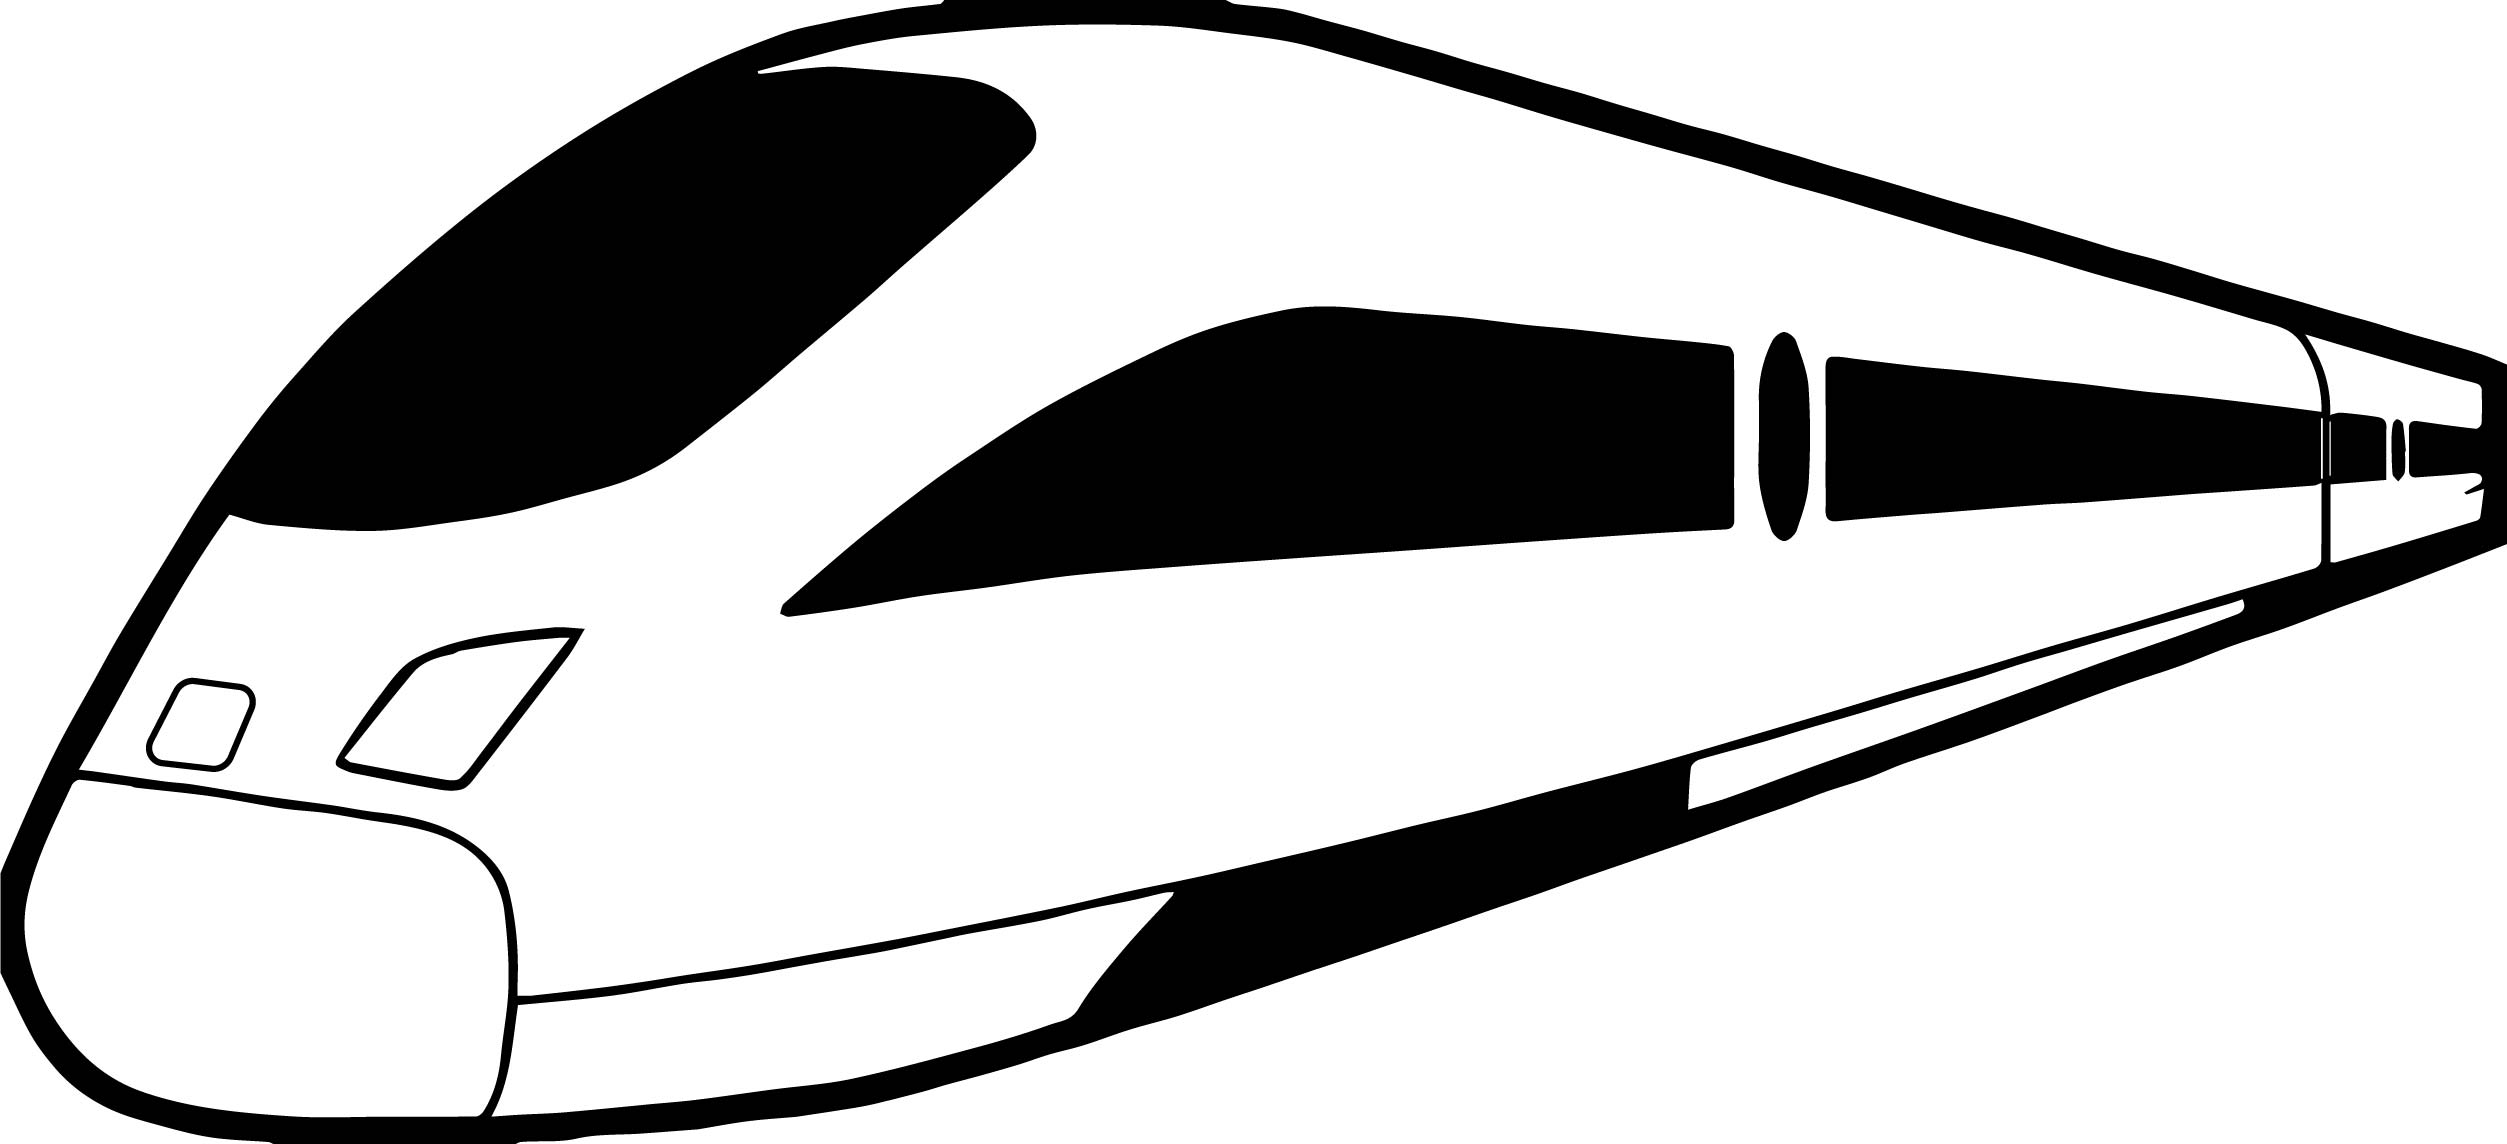 Fastest Train Coloring Page